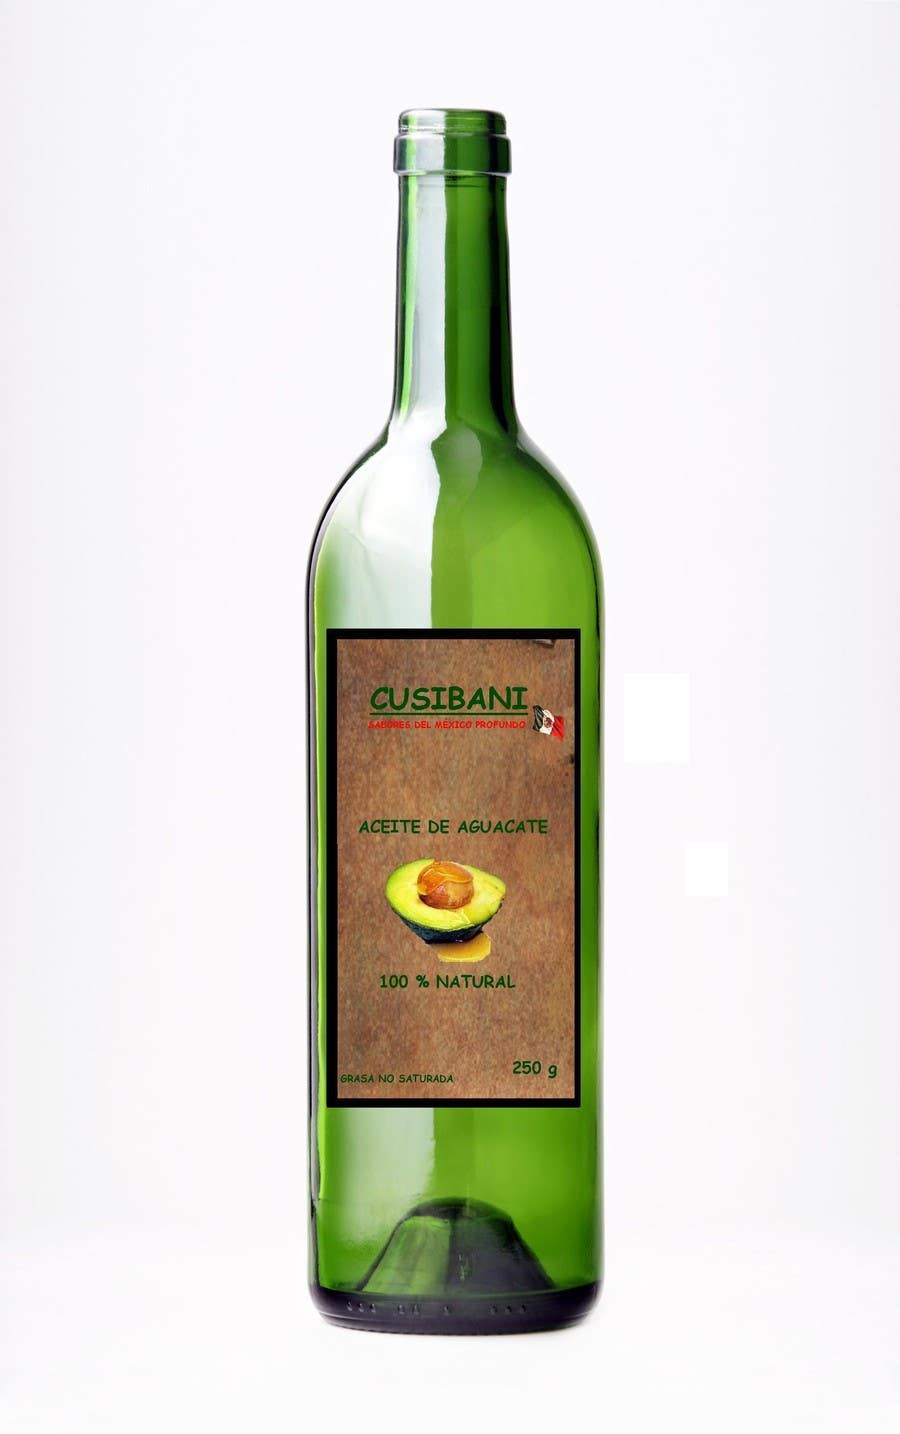 Contest Entry #6 for Etiqueta para botella de aceite de aguacate.